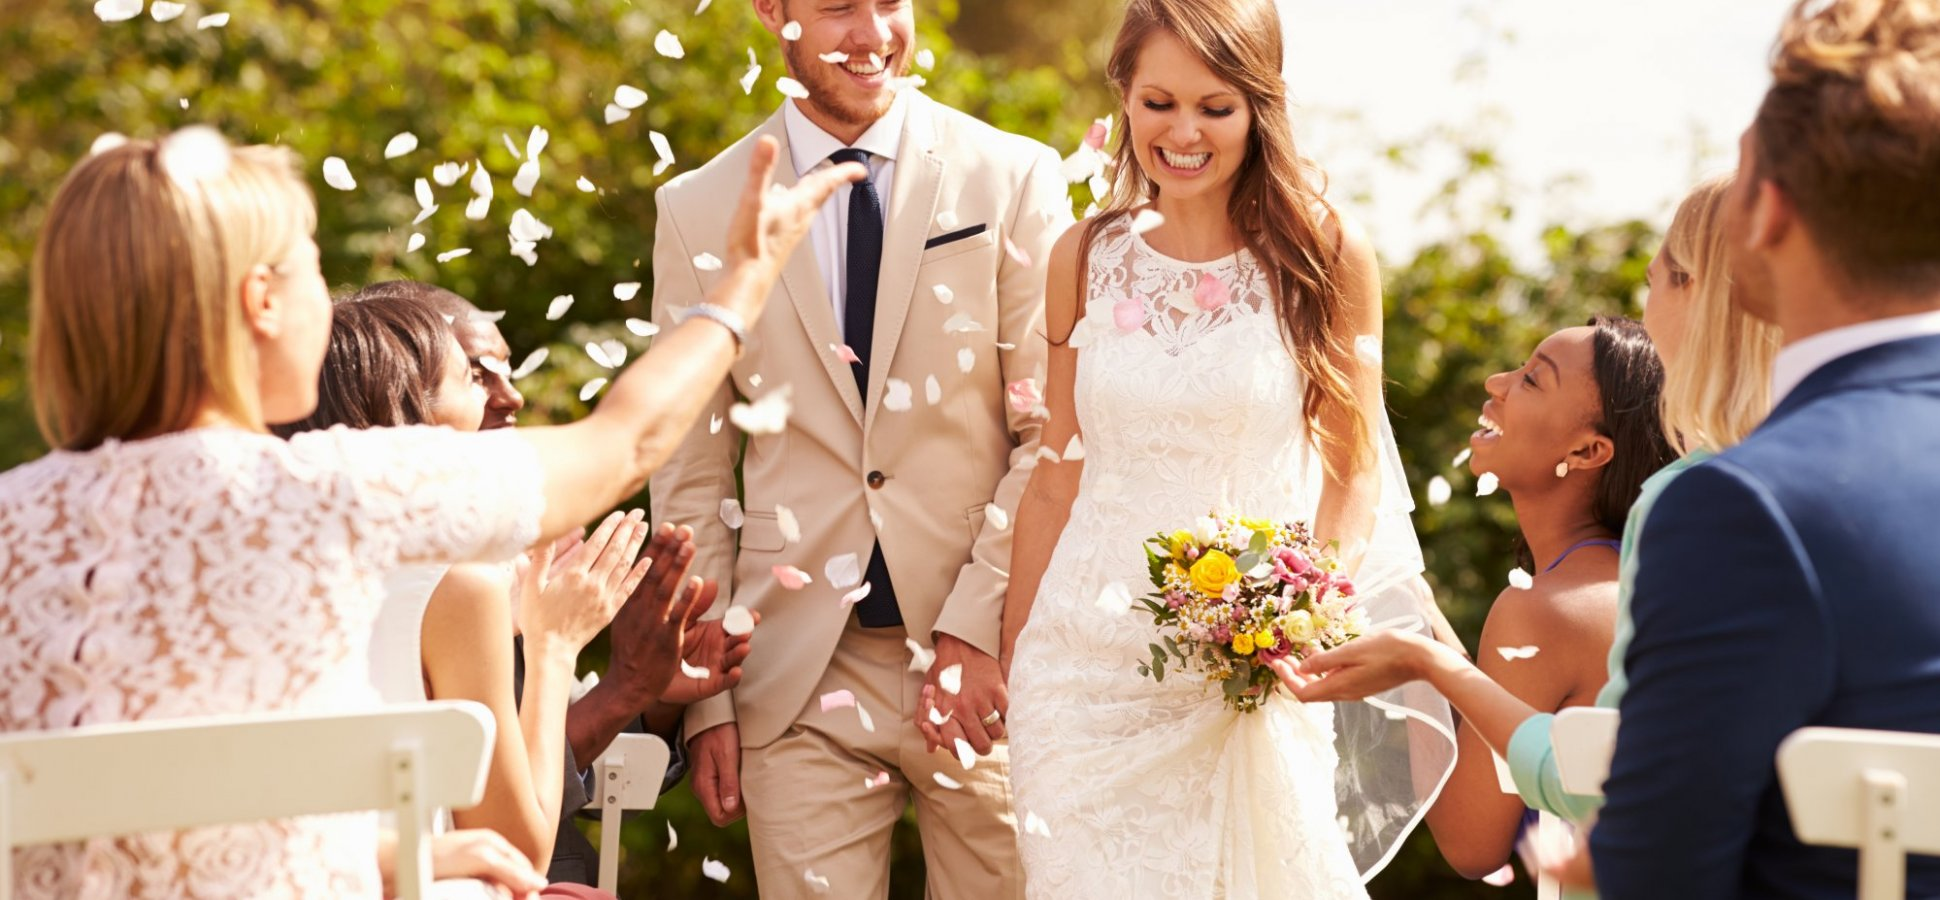 Flowers Have The Power to Make or Break a Wedding Ceremony